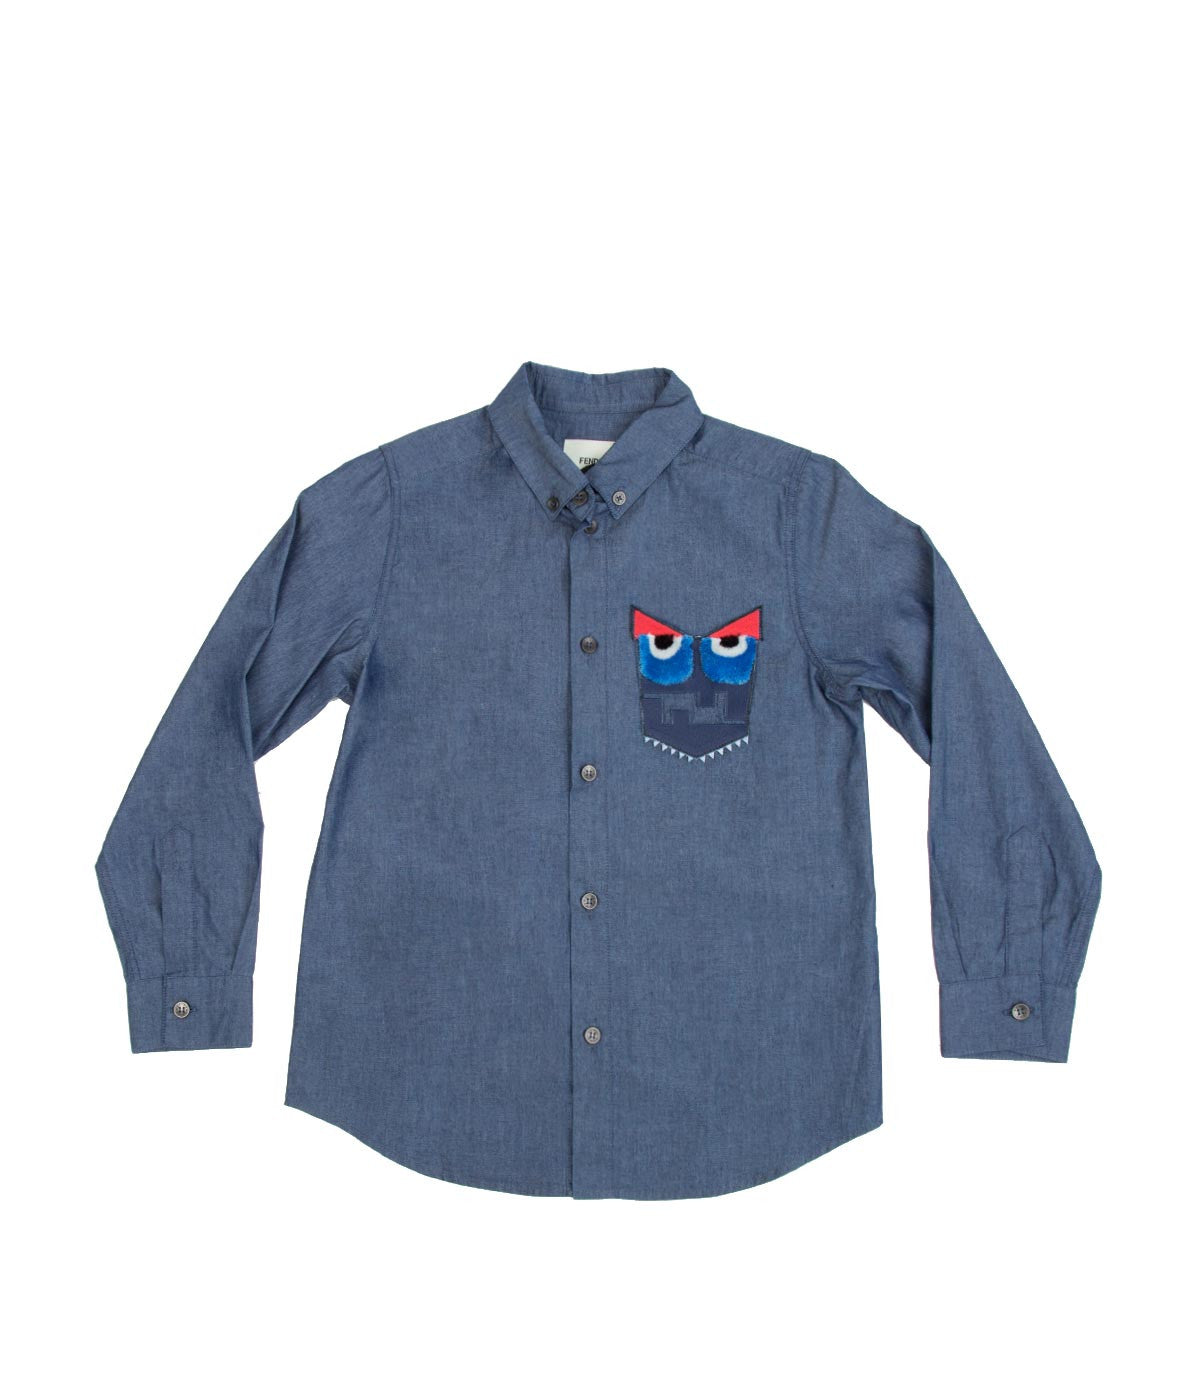 Logo Pocket Blue Chambray Shirt